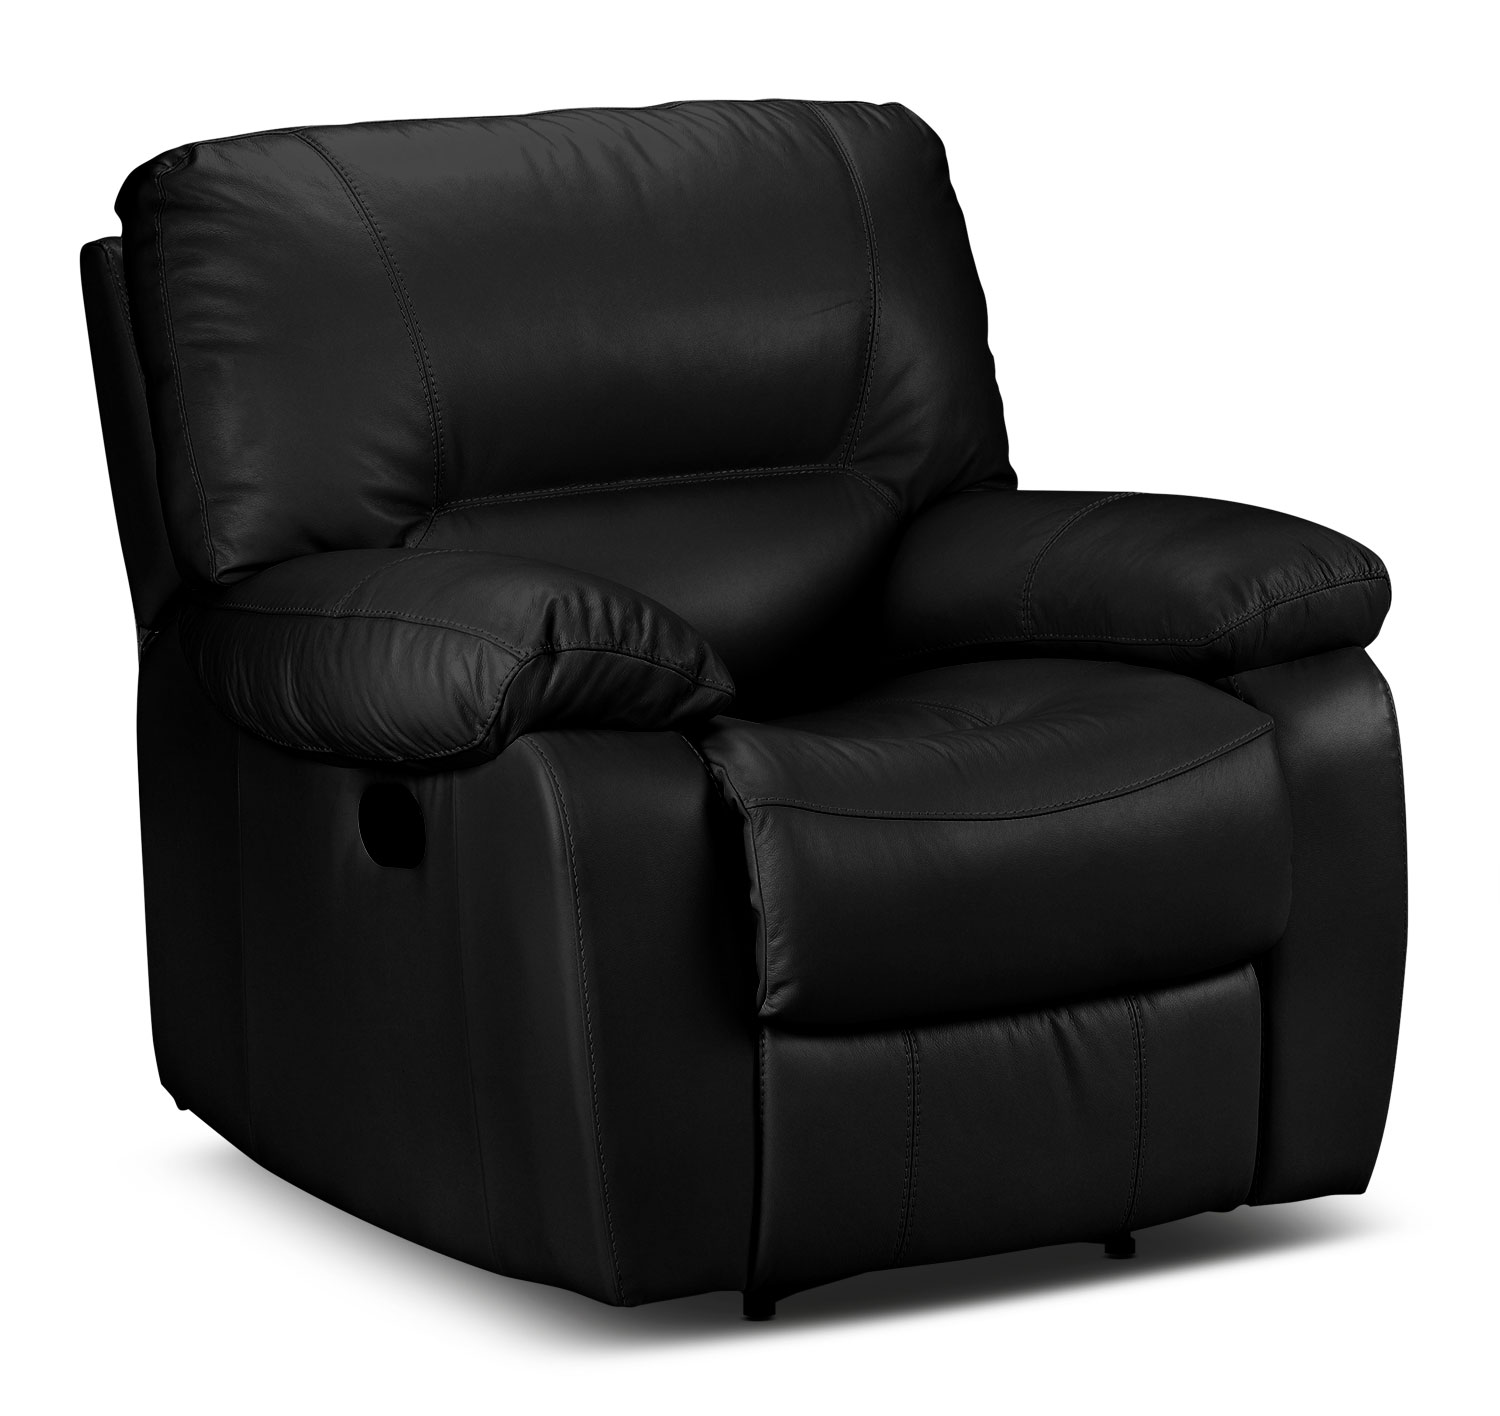 Piermont Recliner - Black